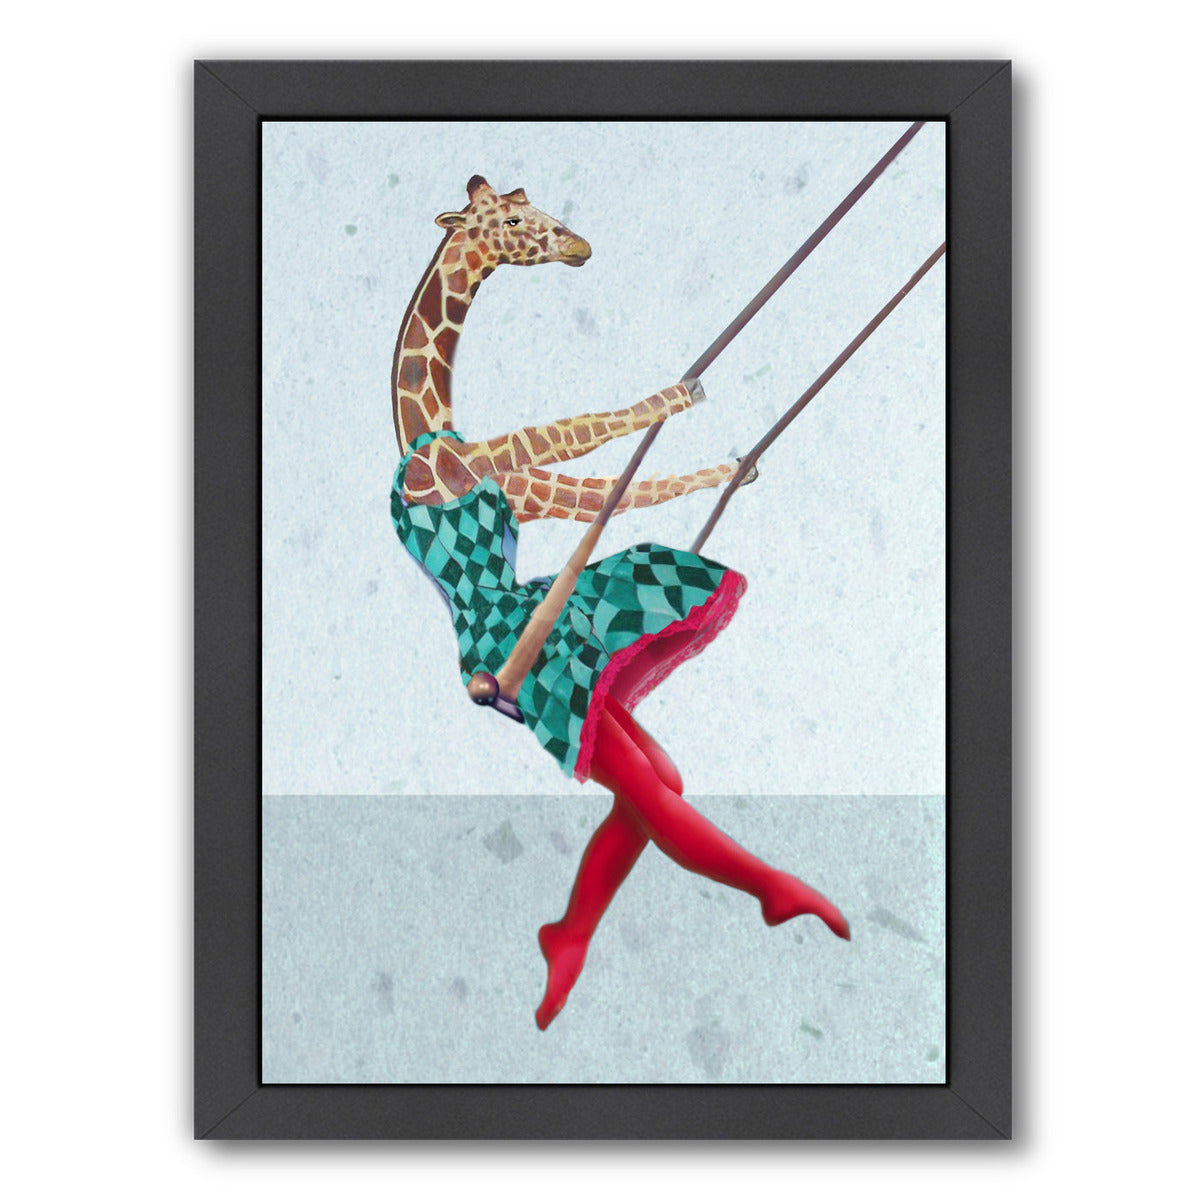 Giraffe On A Swing By Coco De Paris - Black Framed Print - Wall Art - Americanflat